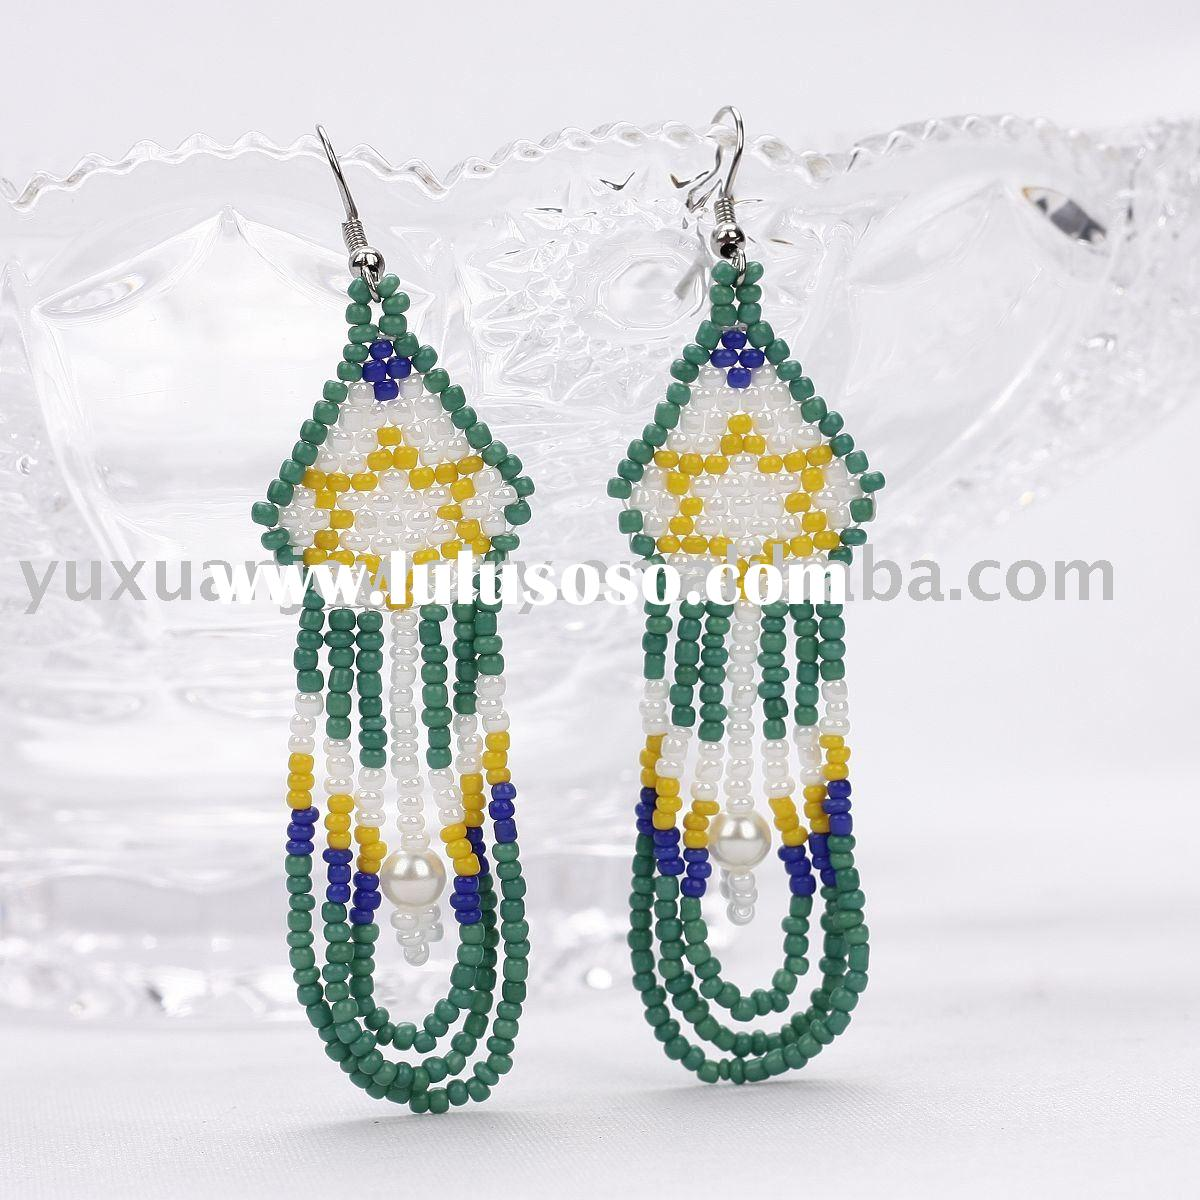 Beaded Open Filigree Earring For Sale Price China